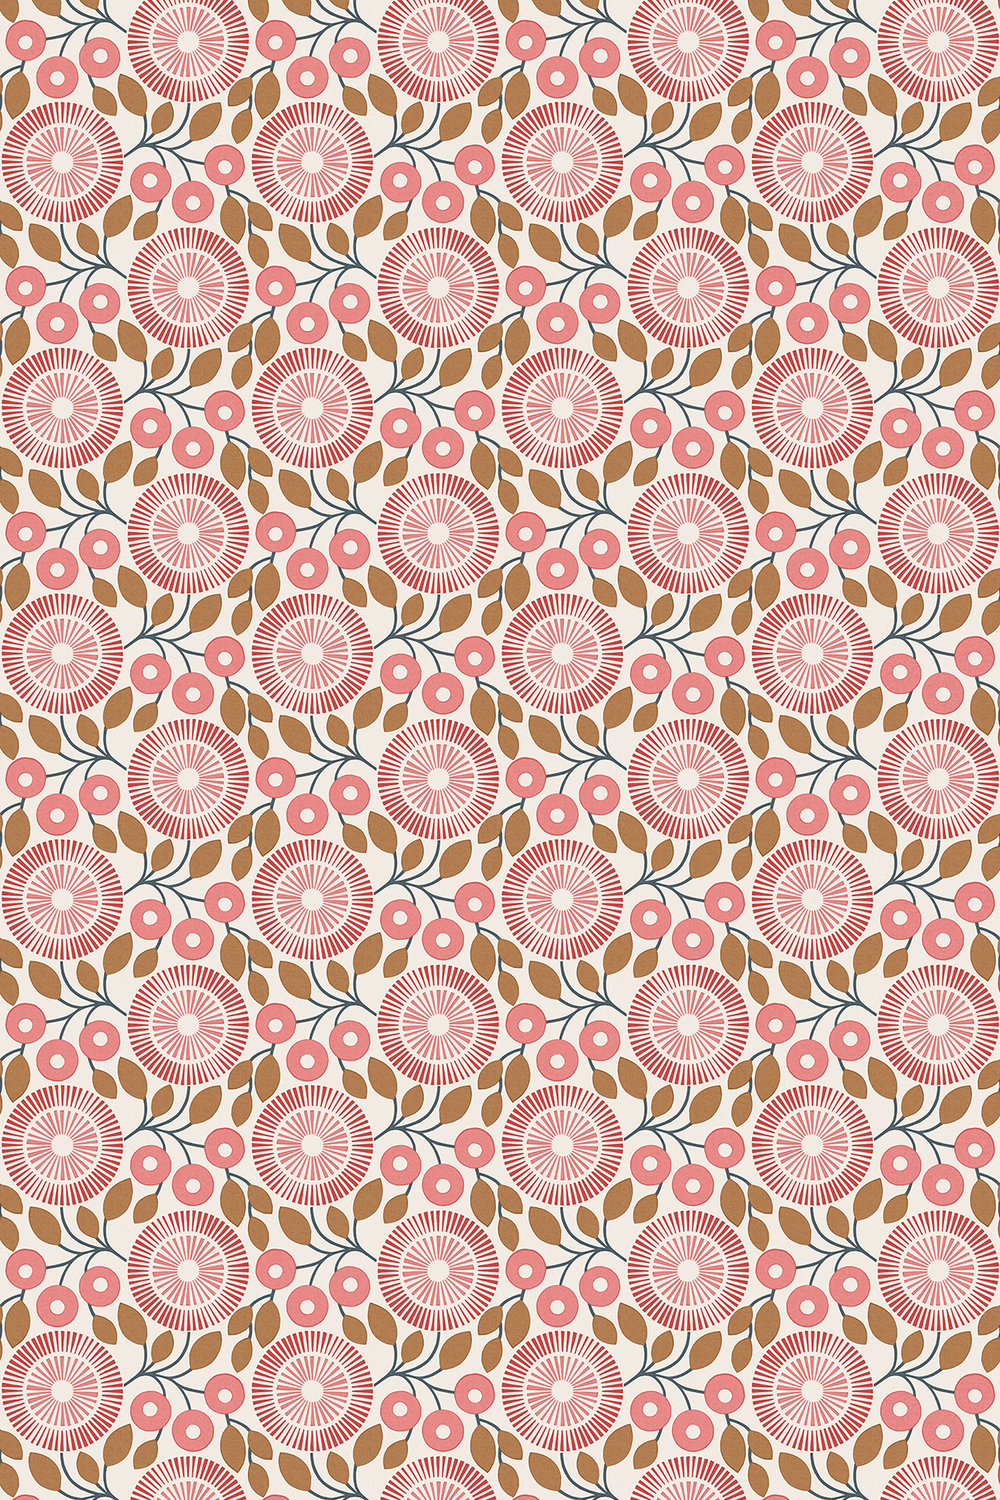 Pompom by natasha marshall coral wallpaper direct for Wallpaper direct